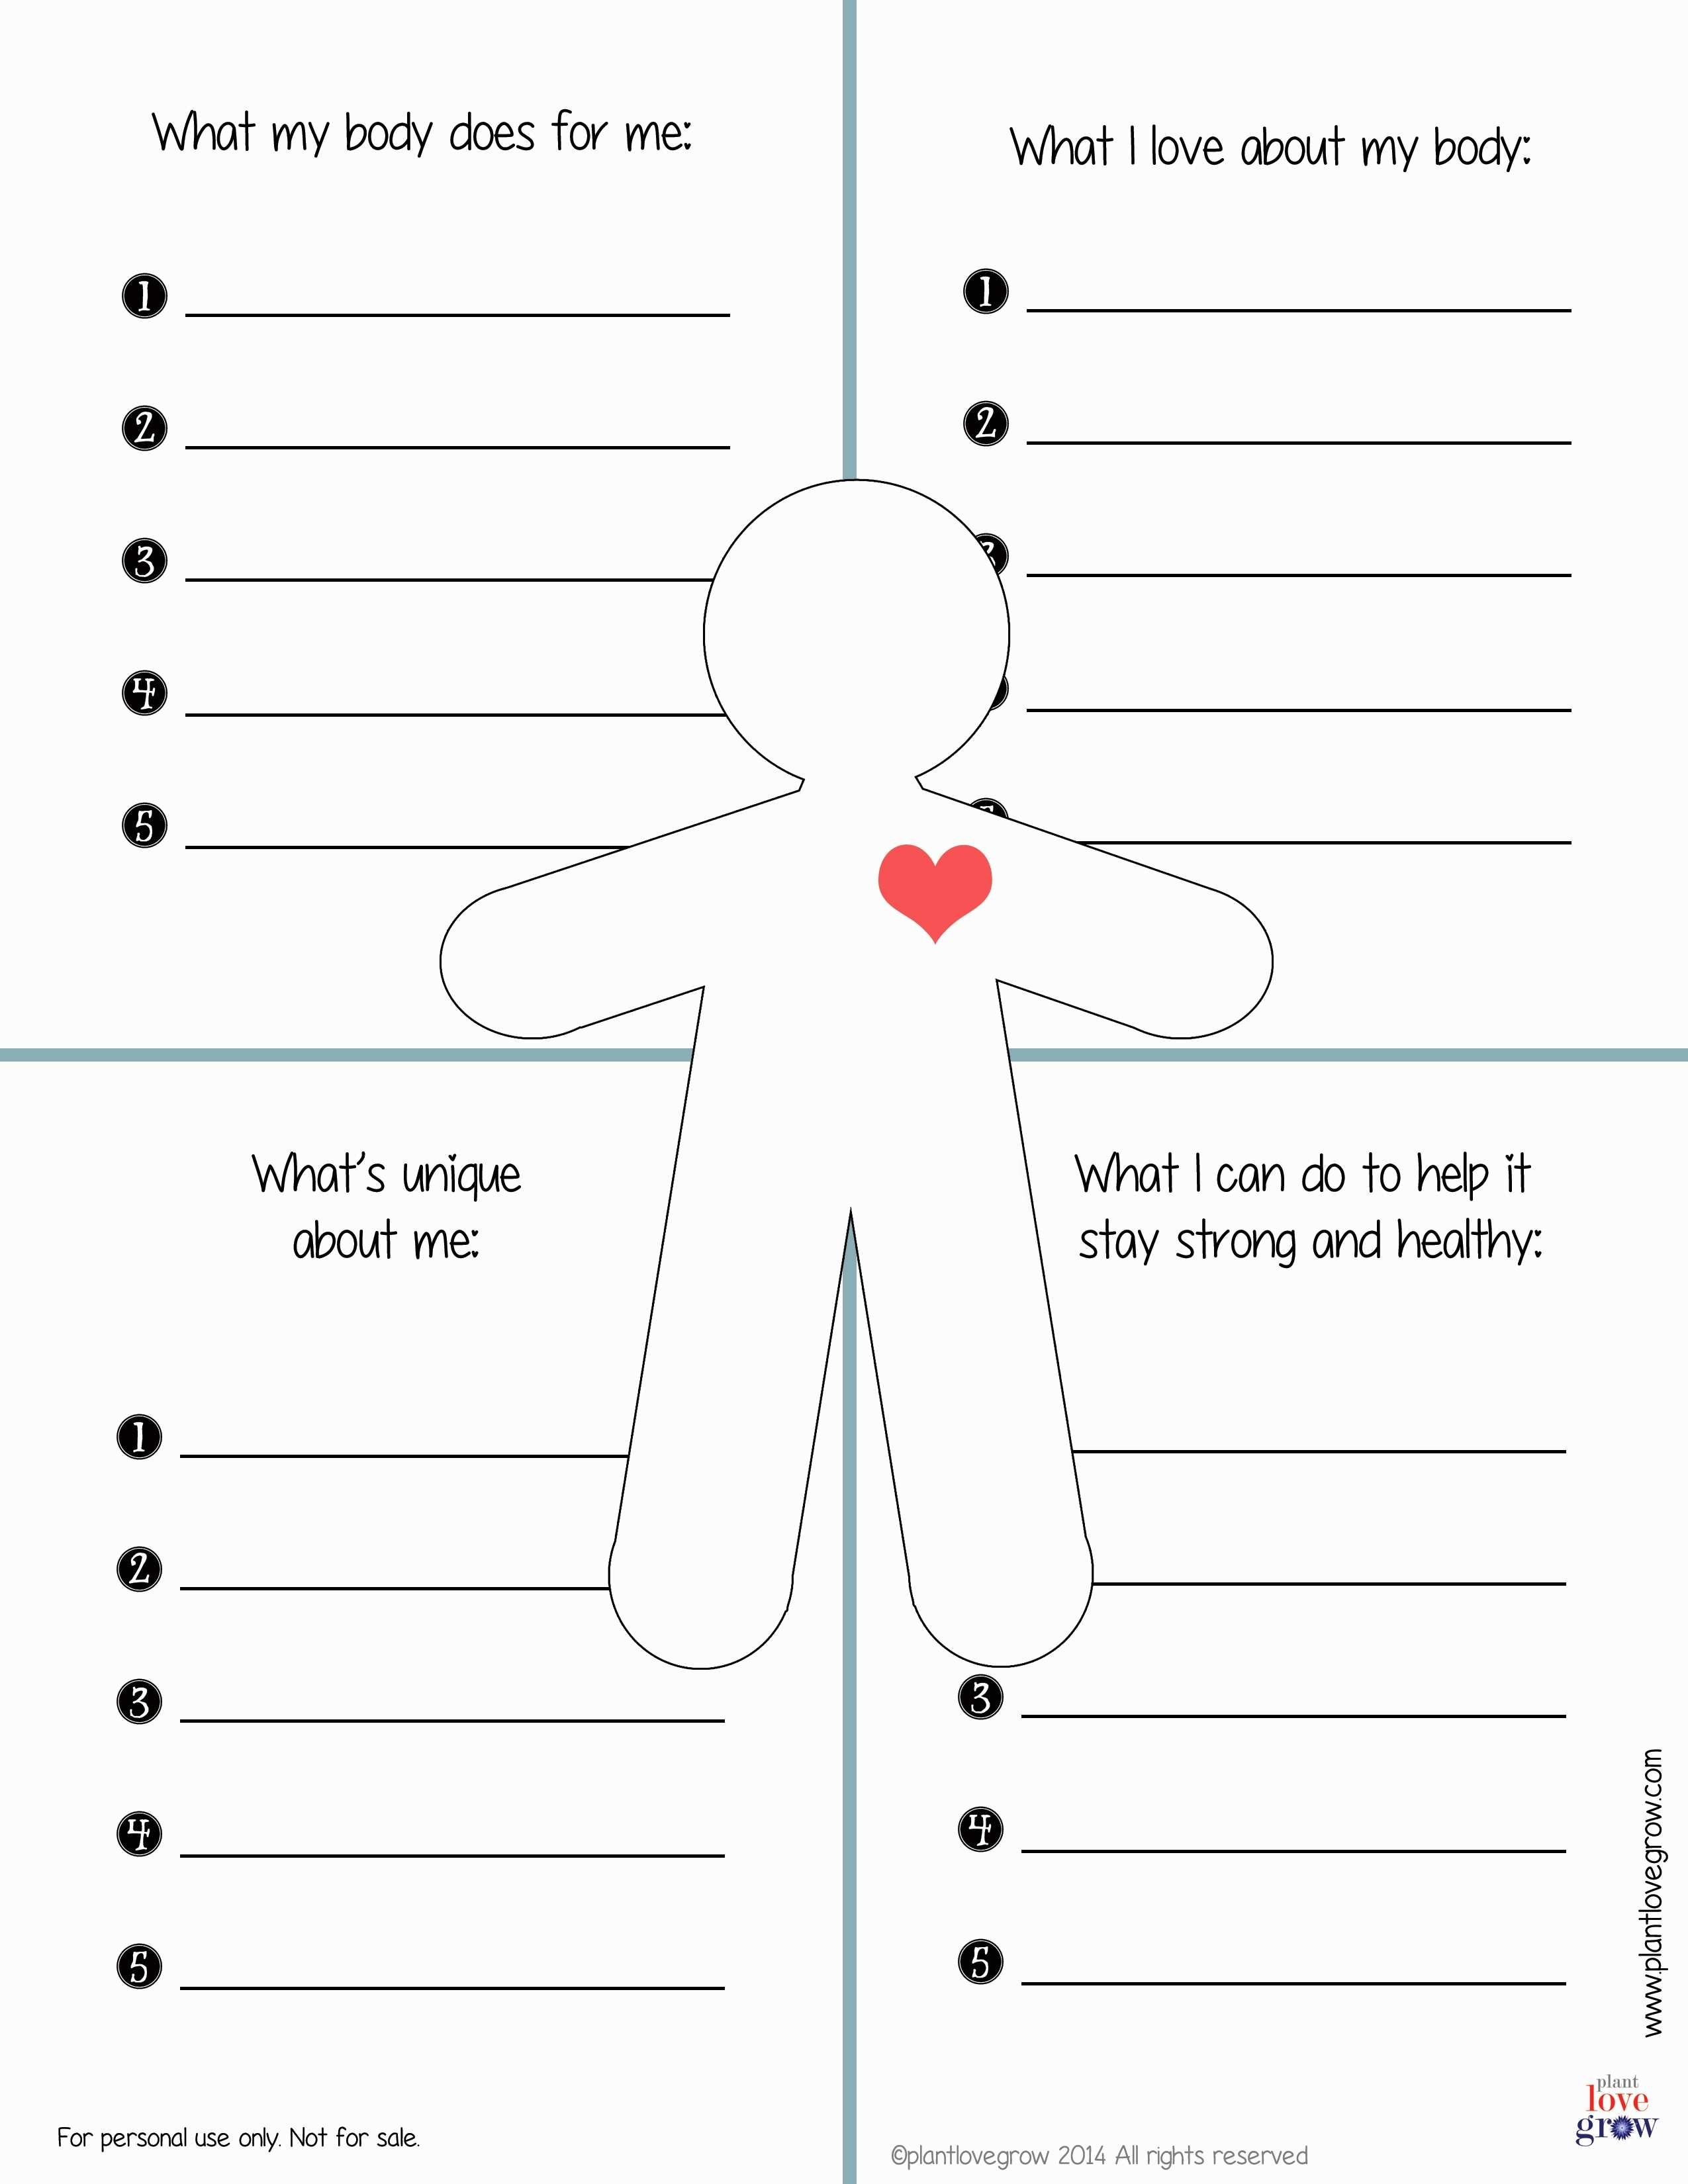 30 Self Esteem Worksheets To Print  Kittybabylove Intended For Self Care Worksheets For Adults